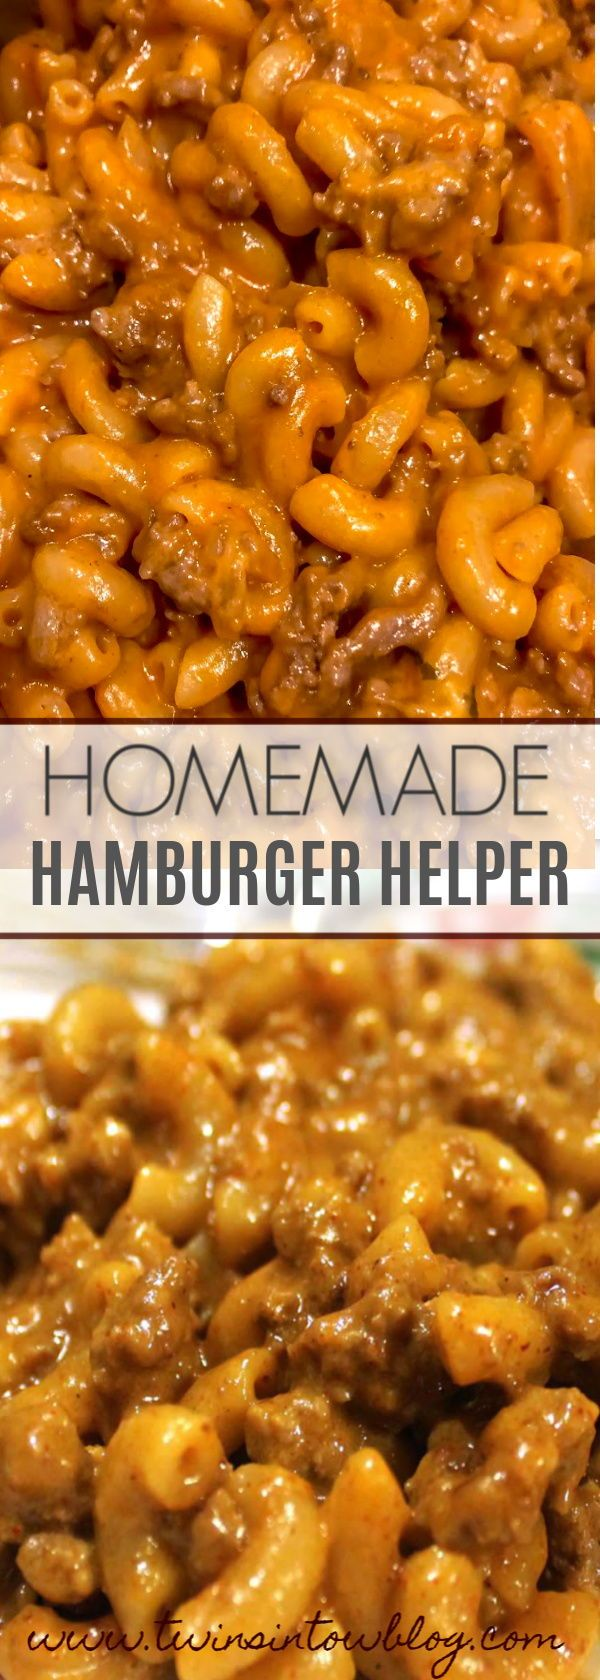 Homemade Hamburger Helper images